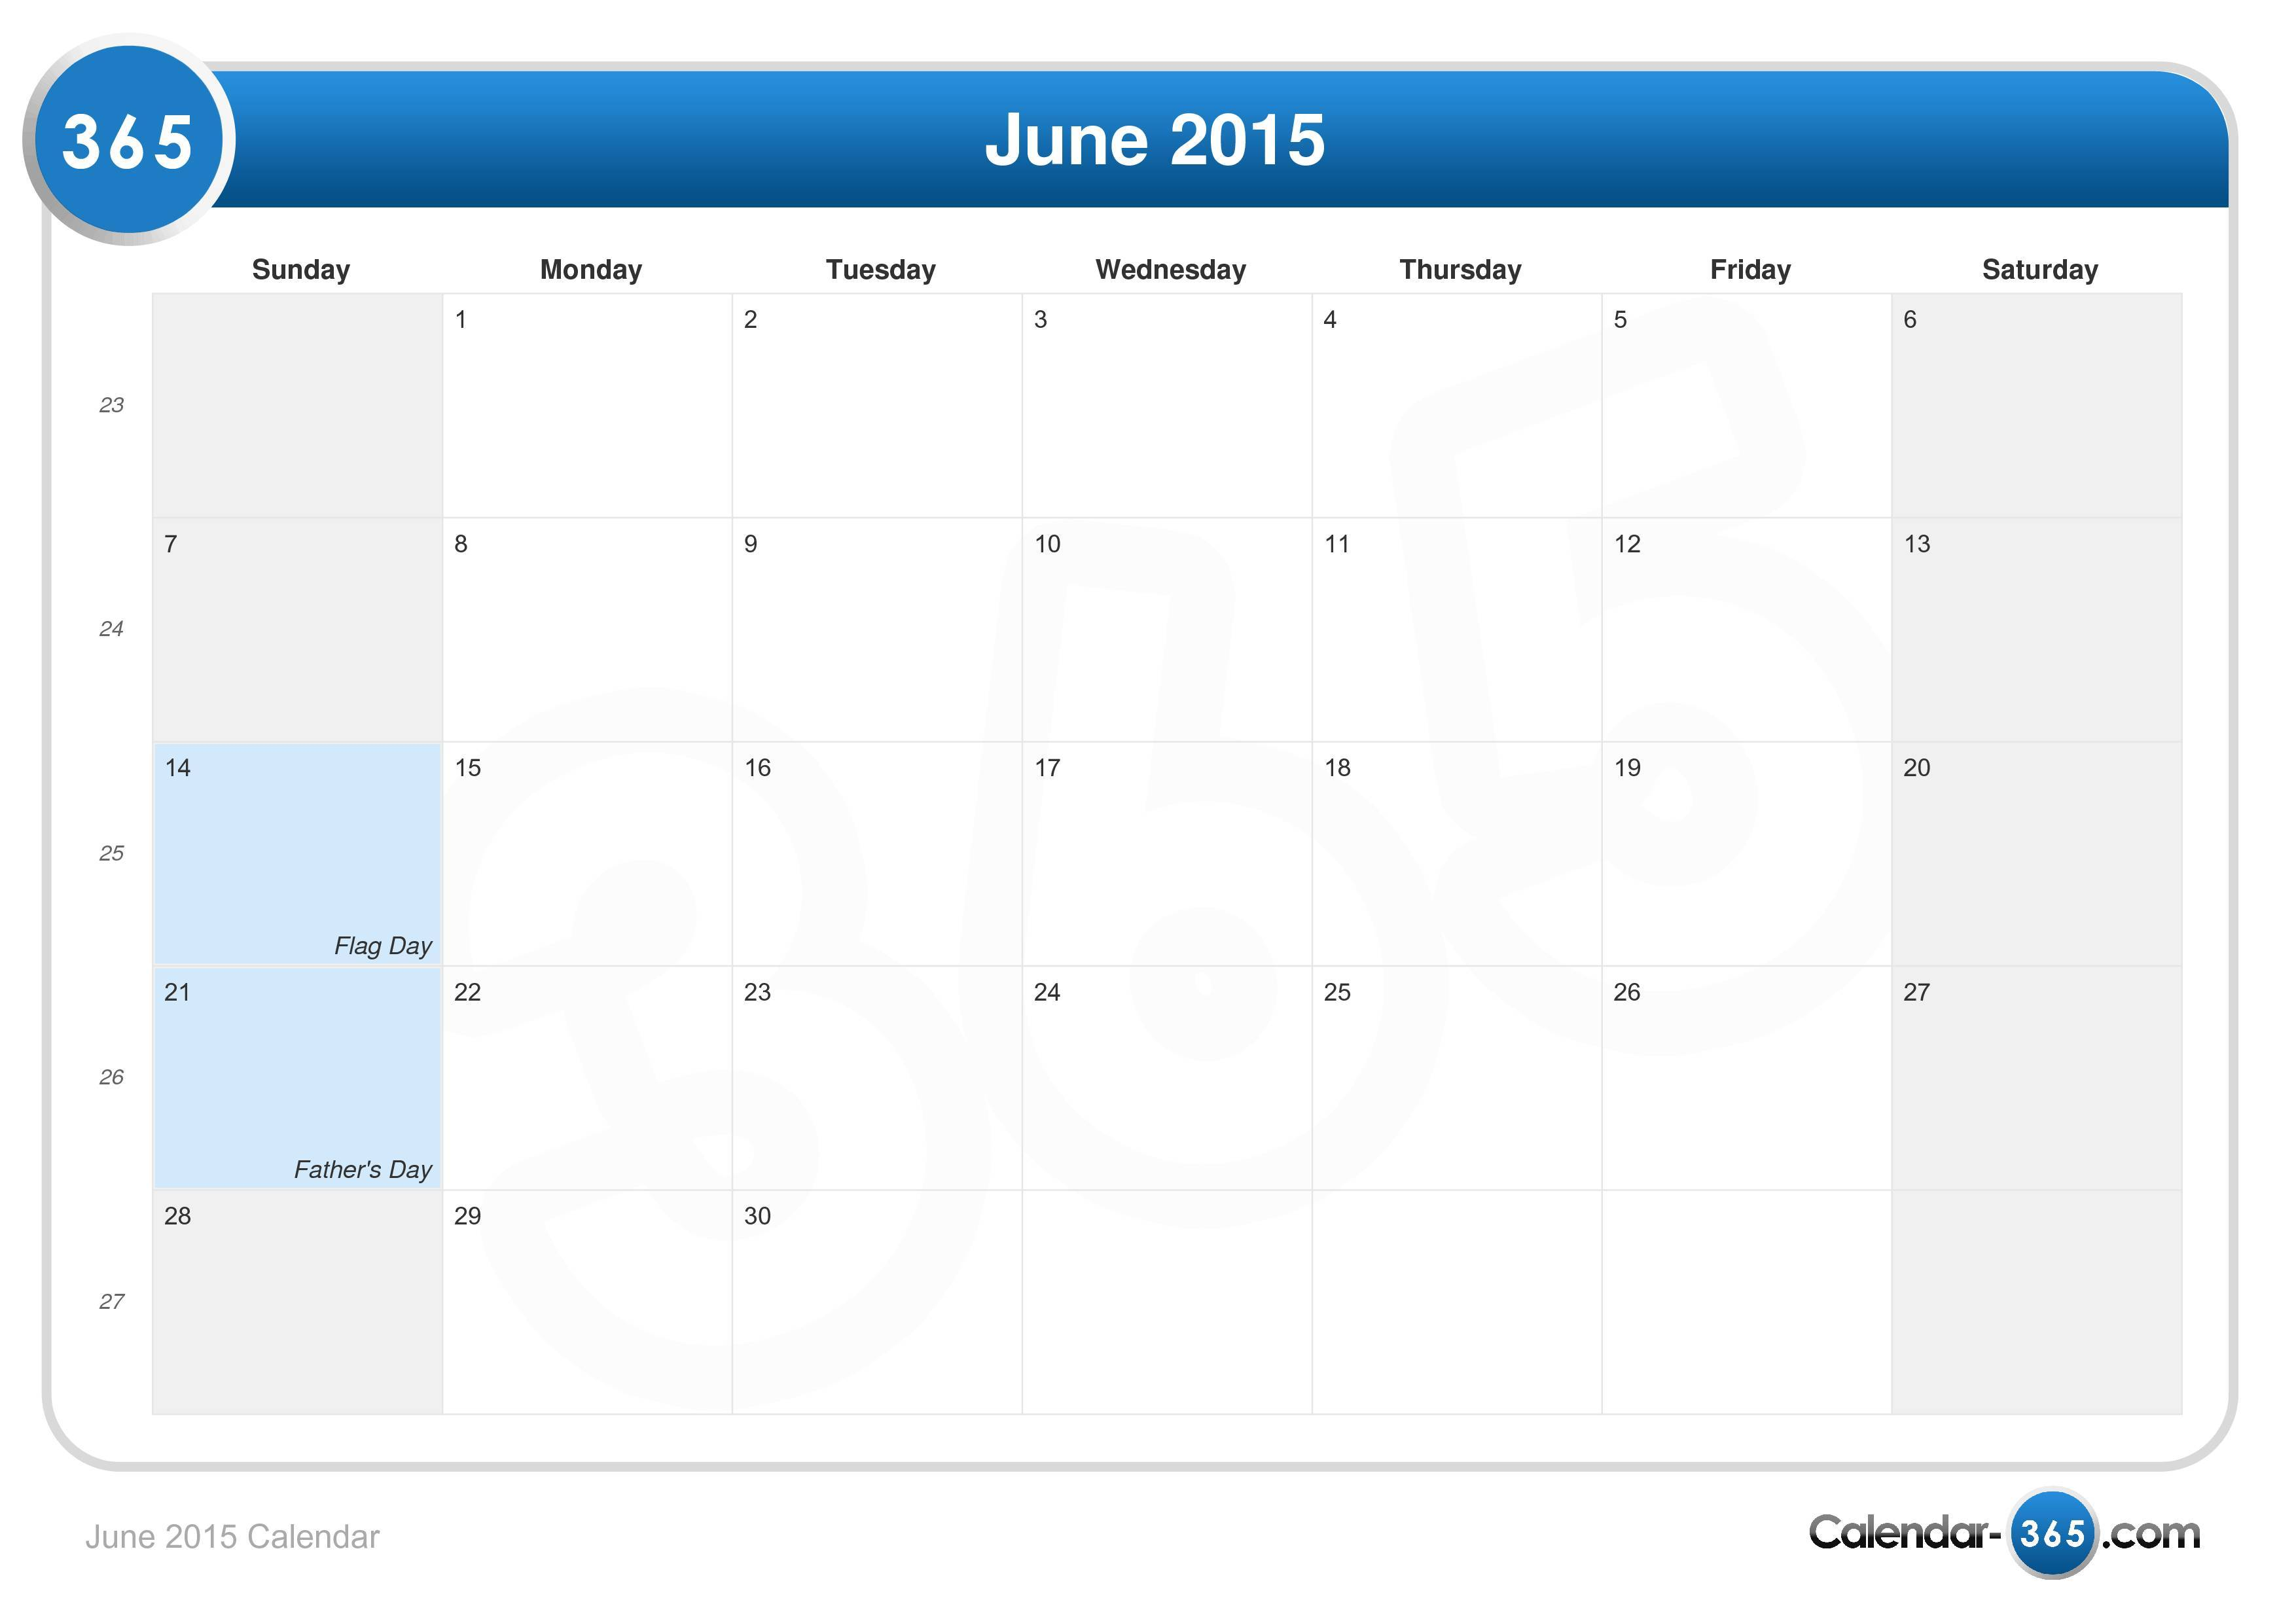 june 2015 timetable Also, a few events will take place a bit earlier in 2015, including wrestlemania  xxxi, which will be held on march 29 rather than its usual april.